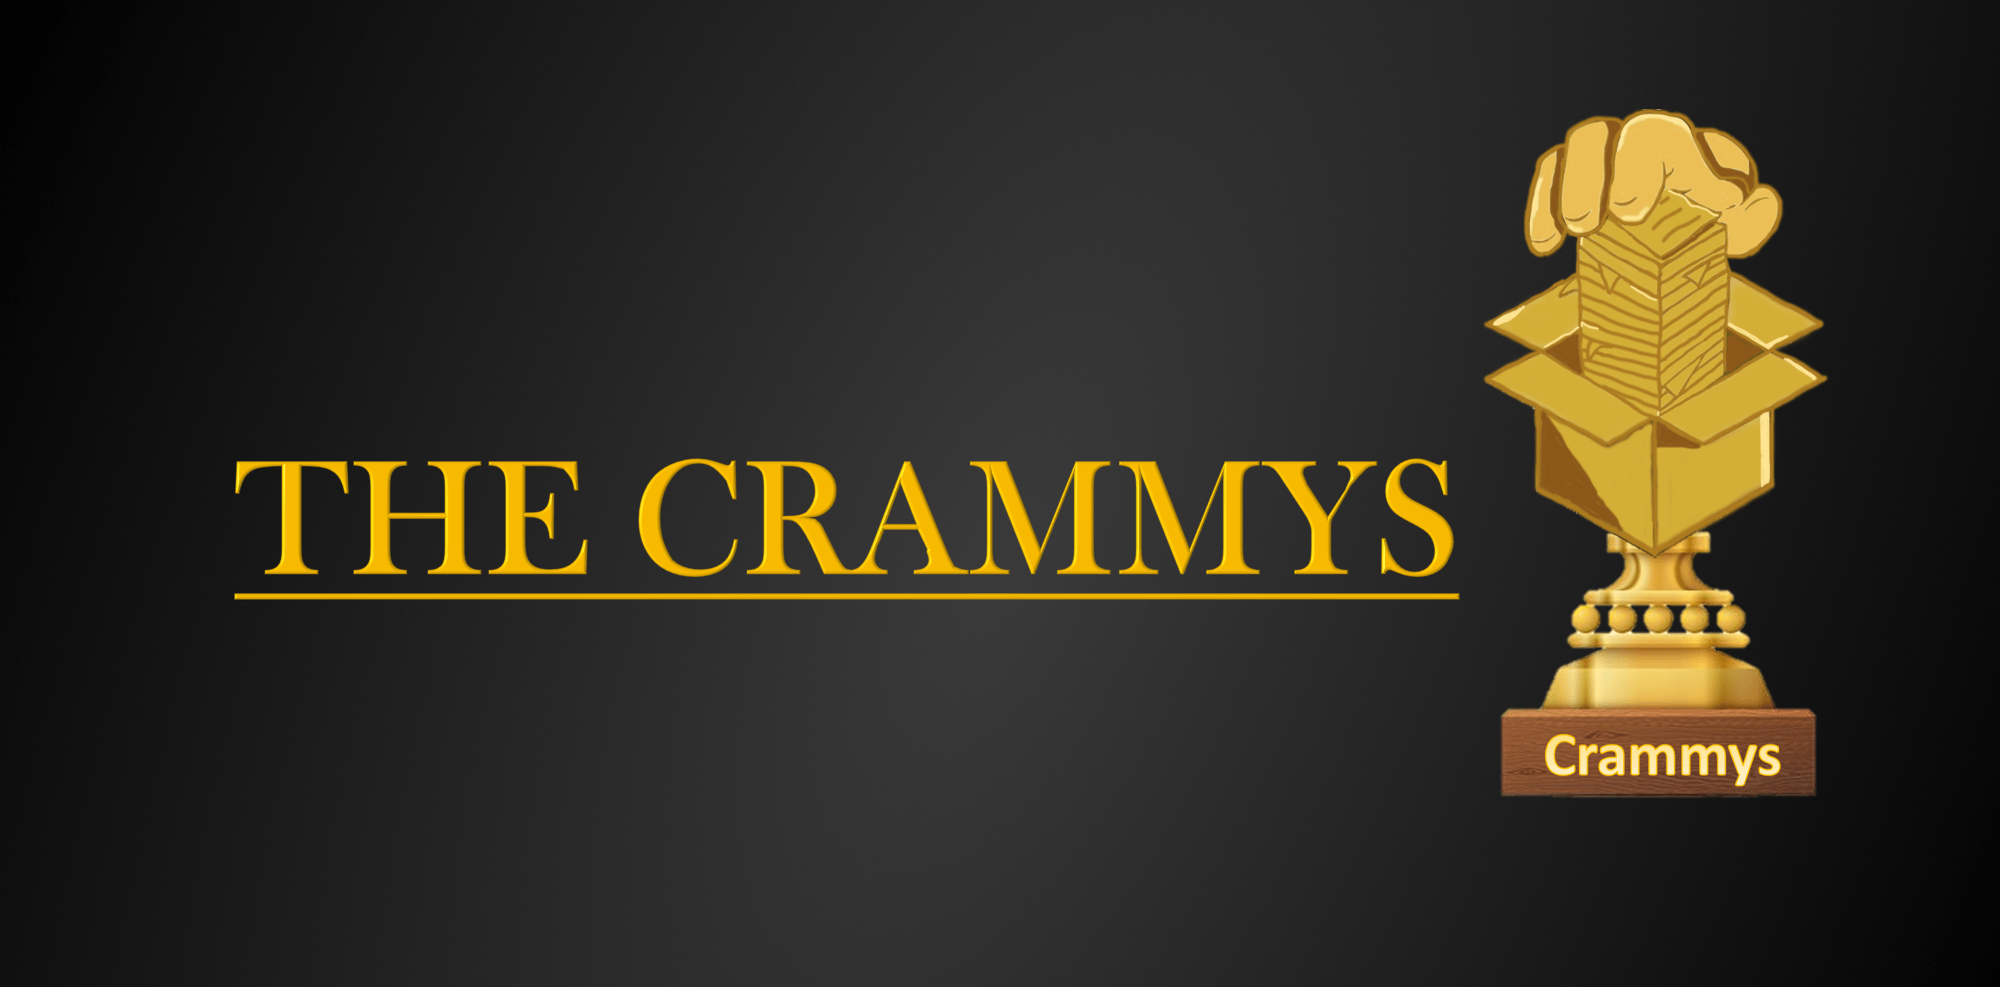 The 2020 Crammy Awards